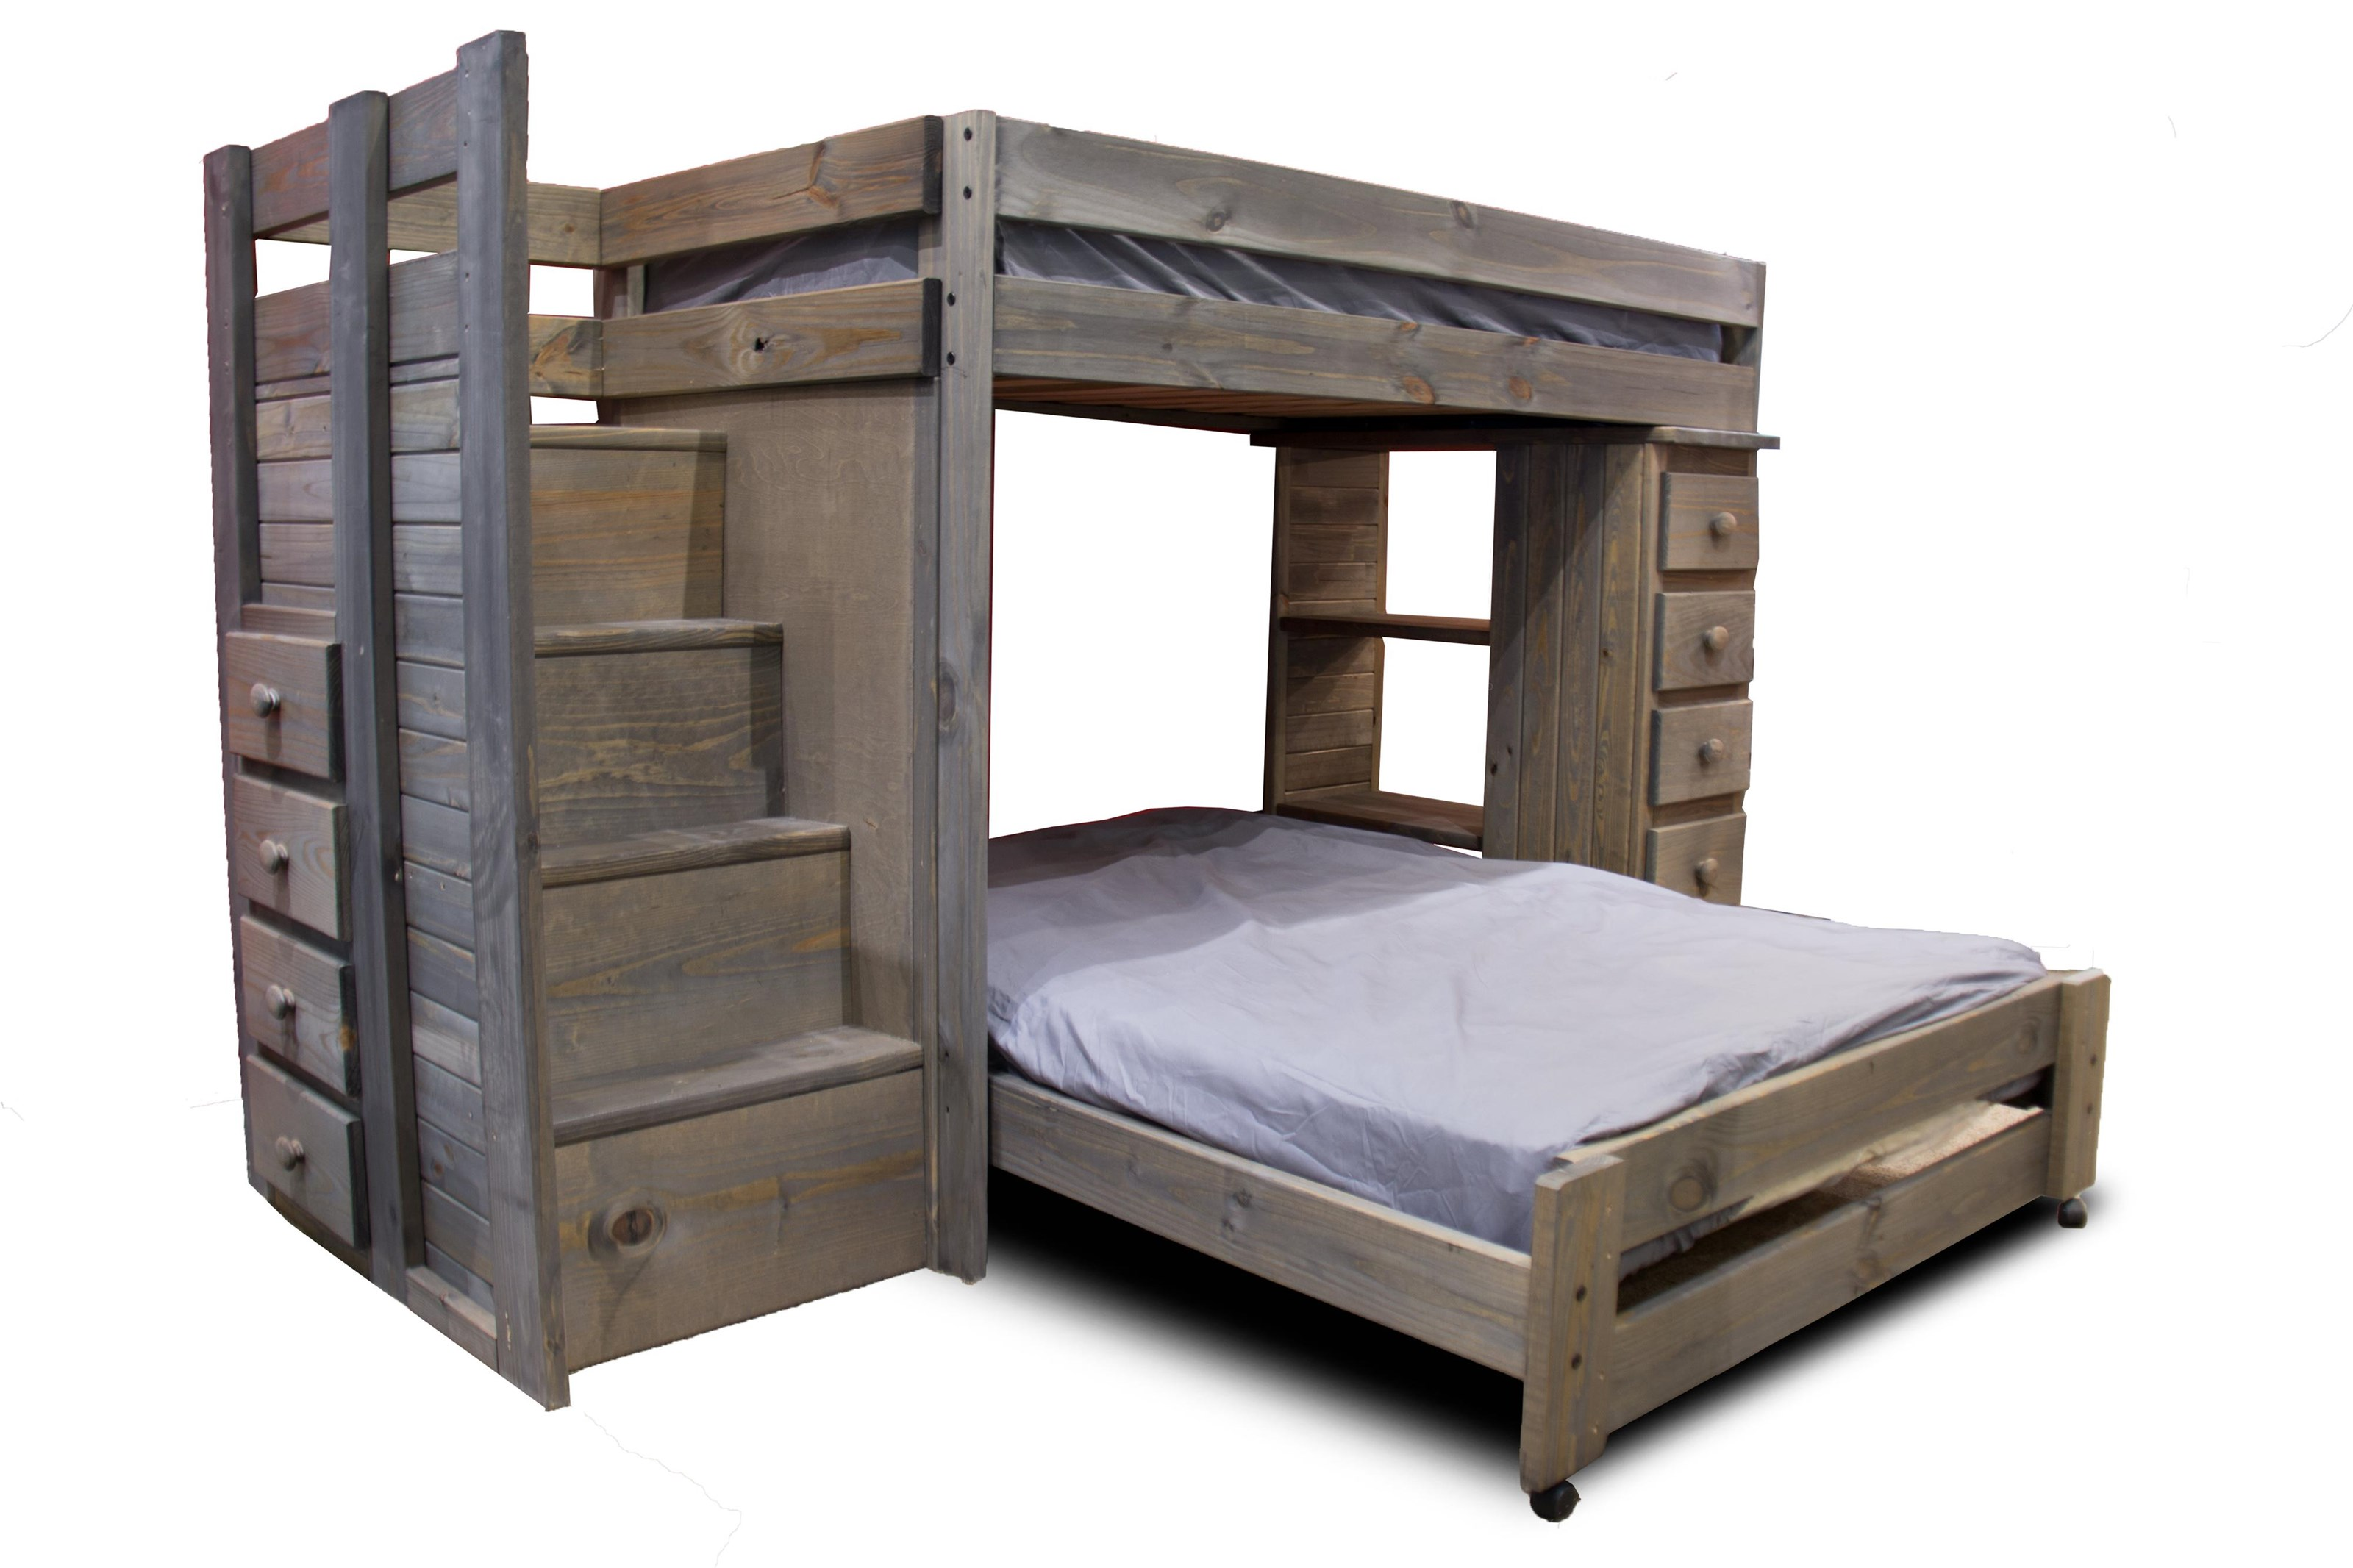 Merveilleux Pine Crafter Walnut Staircase Twin/Full Loft Bed   Item Number: GRP WAL49472